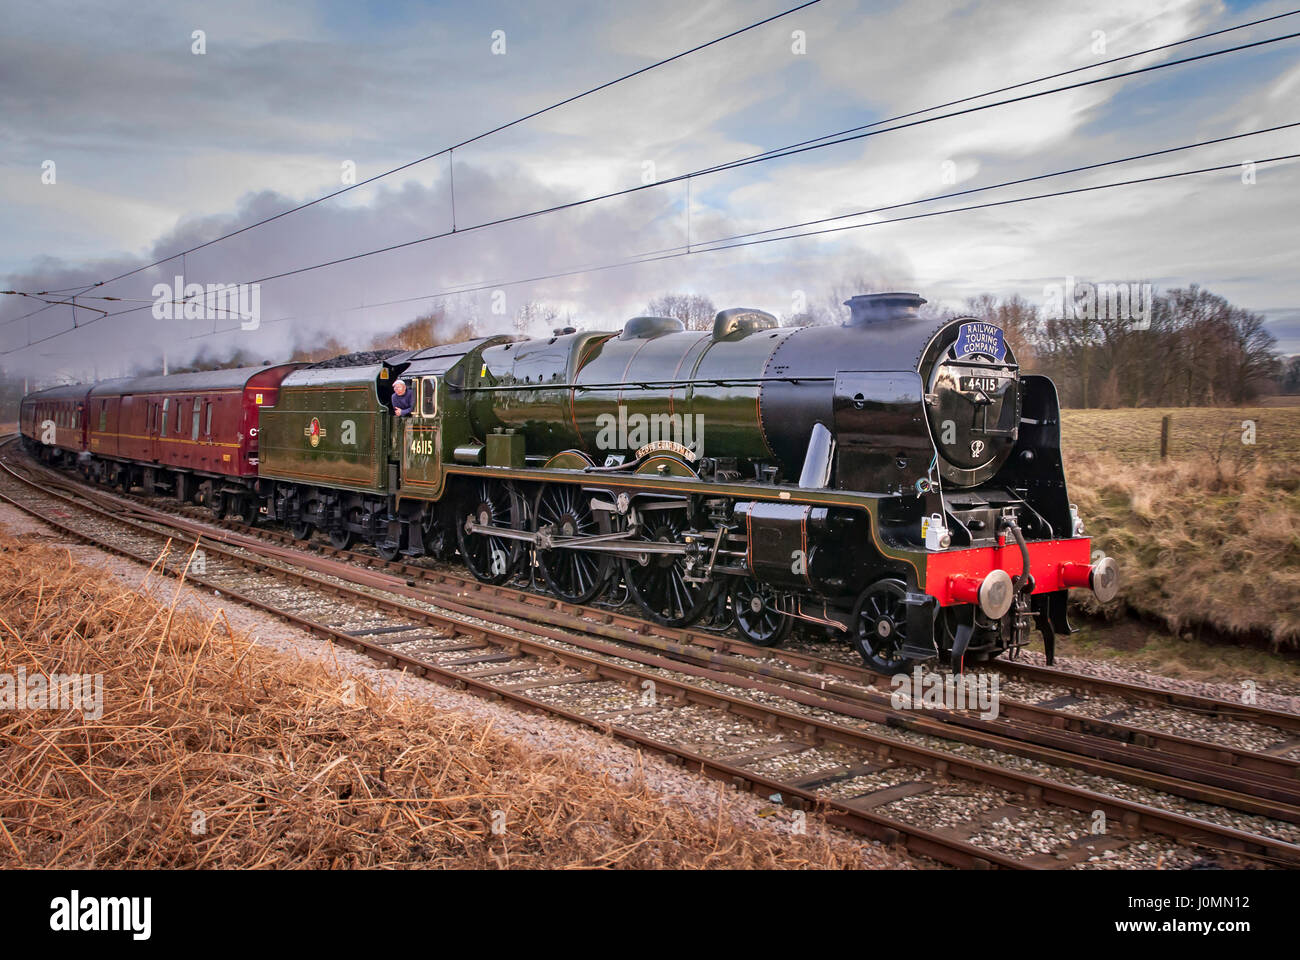 The ill fated Cotton Mills Express re-run on saturday Feb 13th hauled by Class 7P, 46115, 'Scots Guardsman' - Stock Image